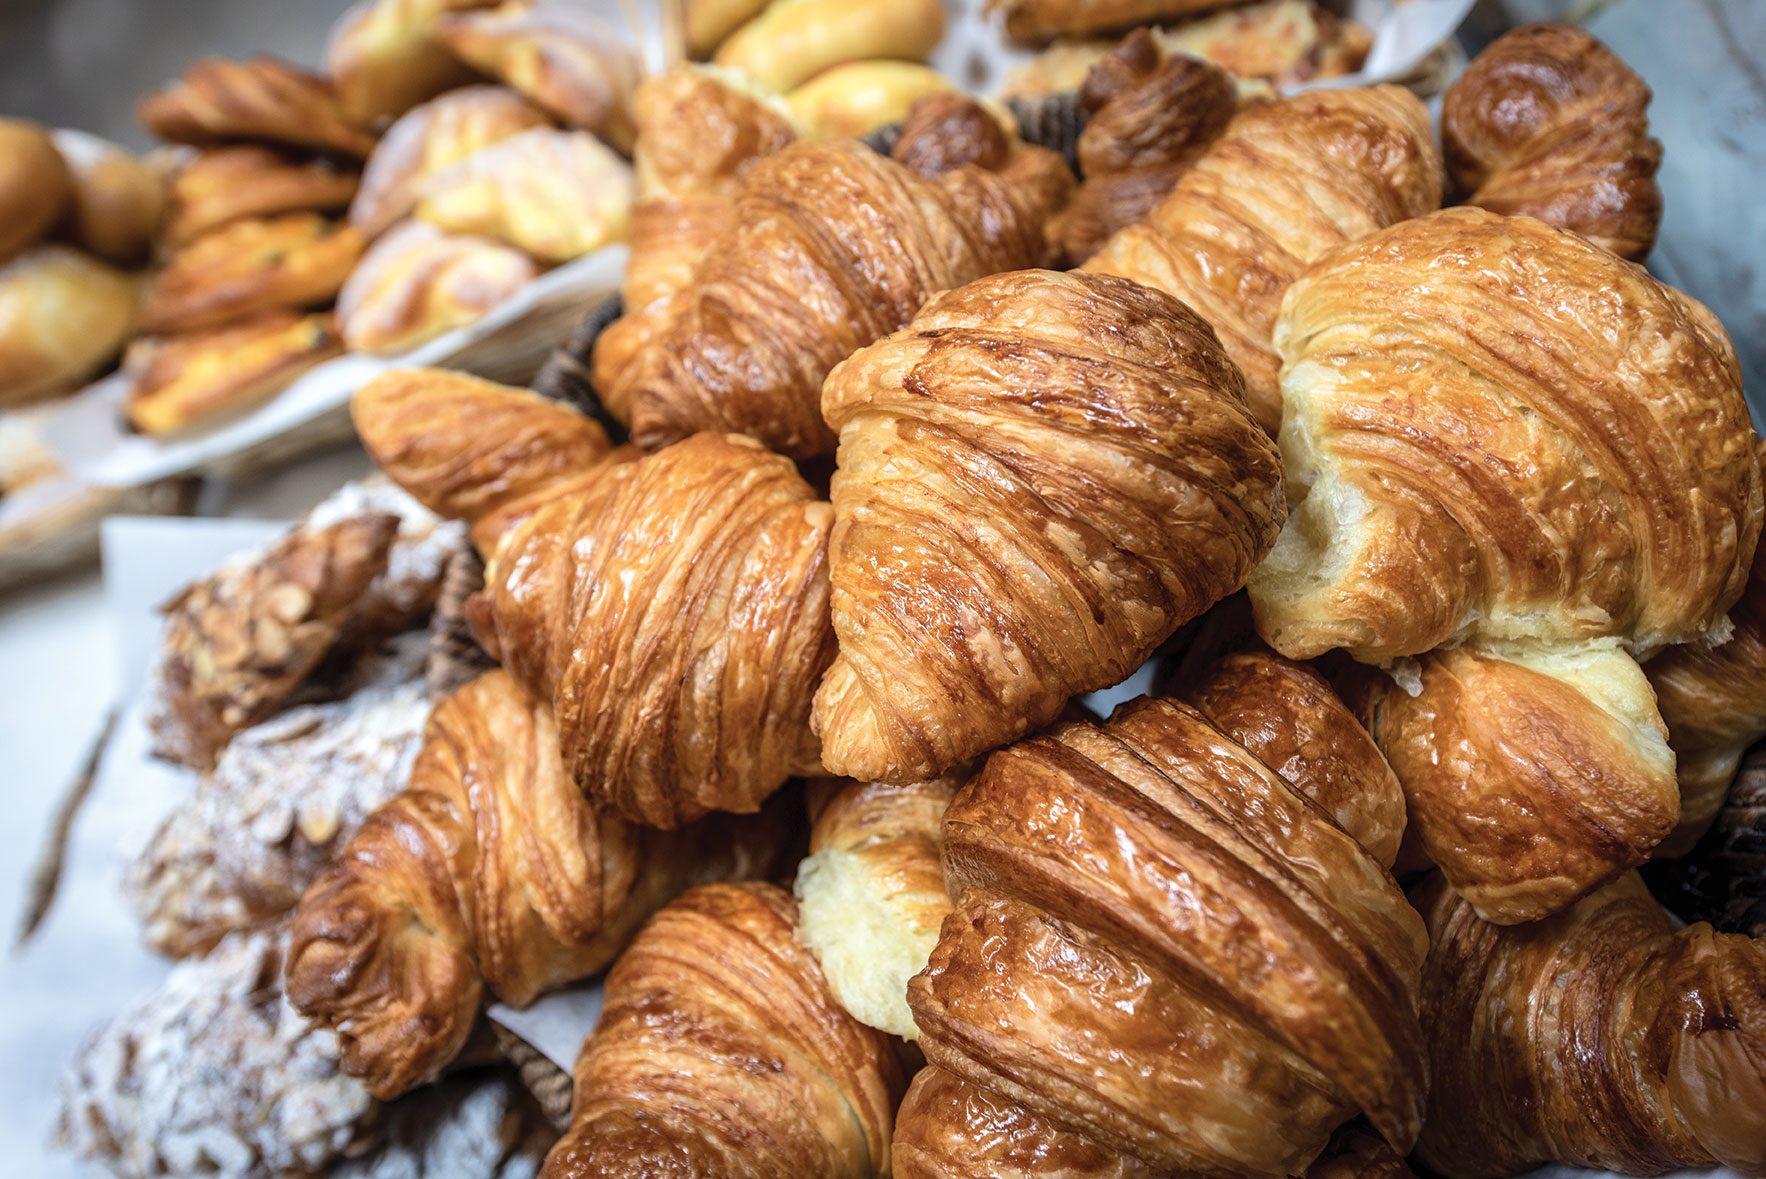 The French Oven croissants